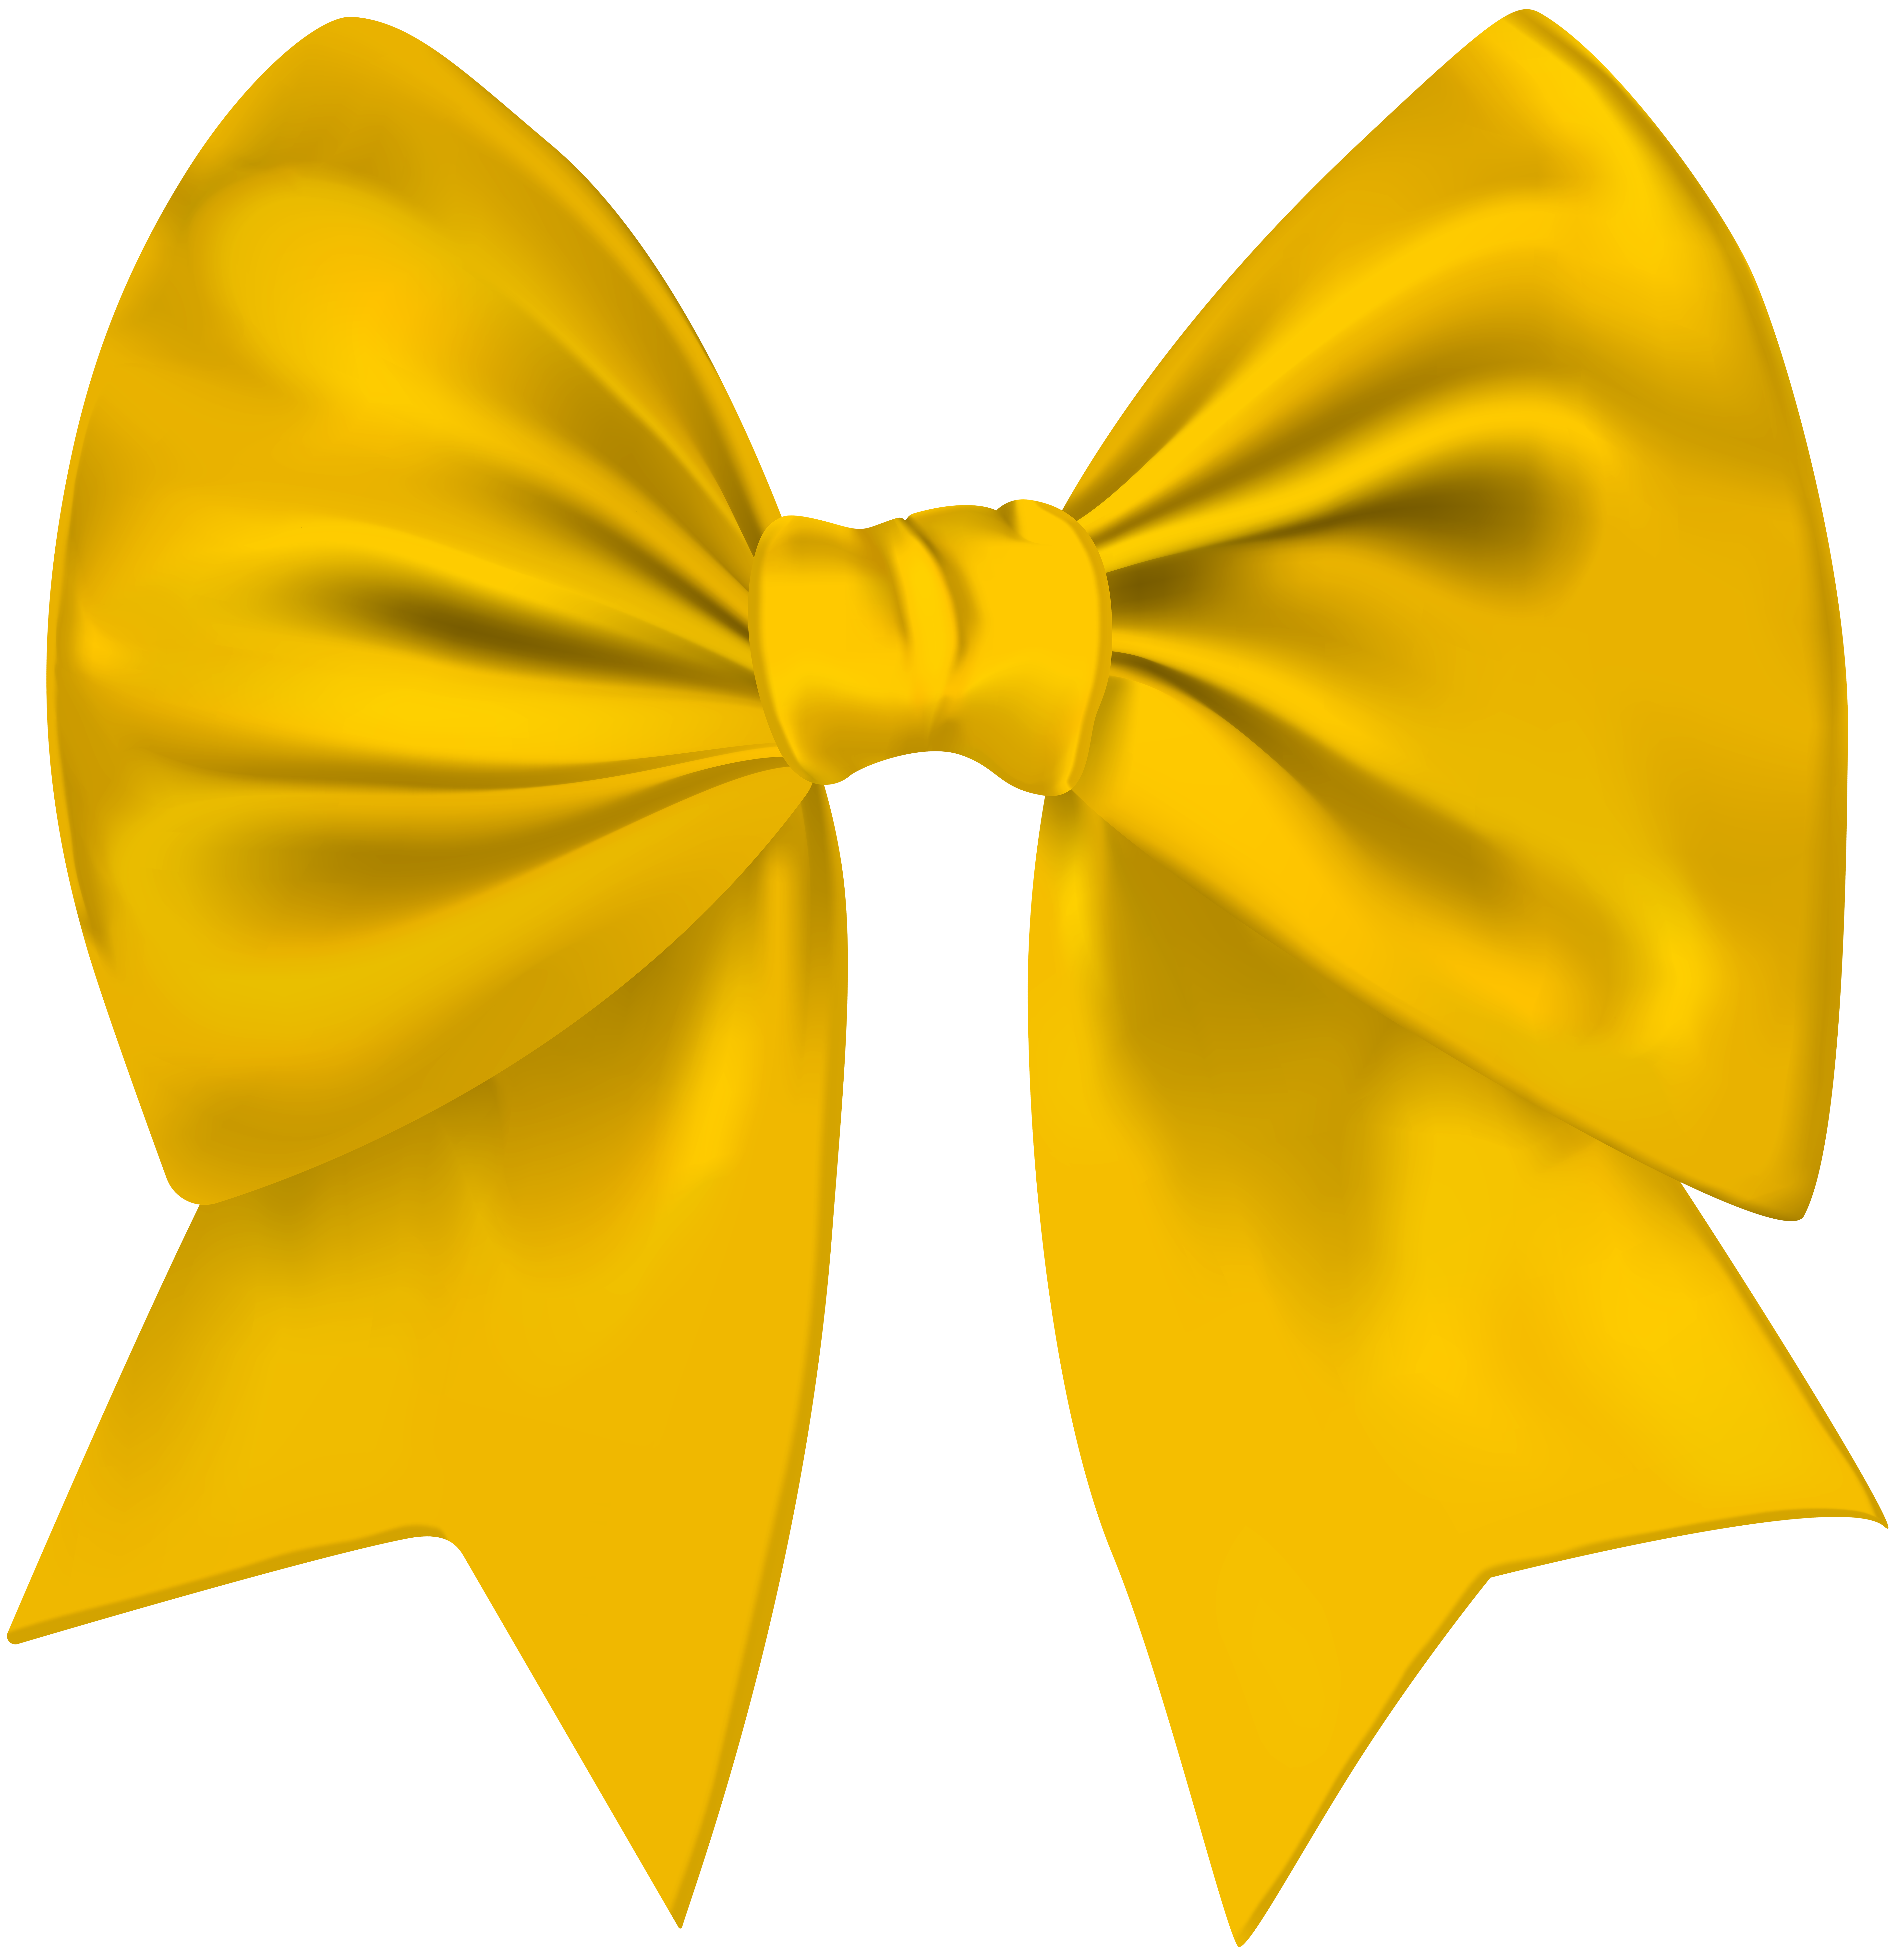 Bow transparent png image. Clipart banner yellow ribbon